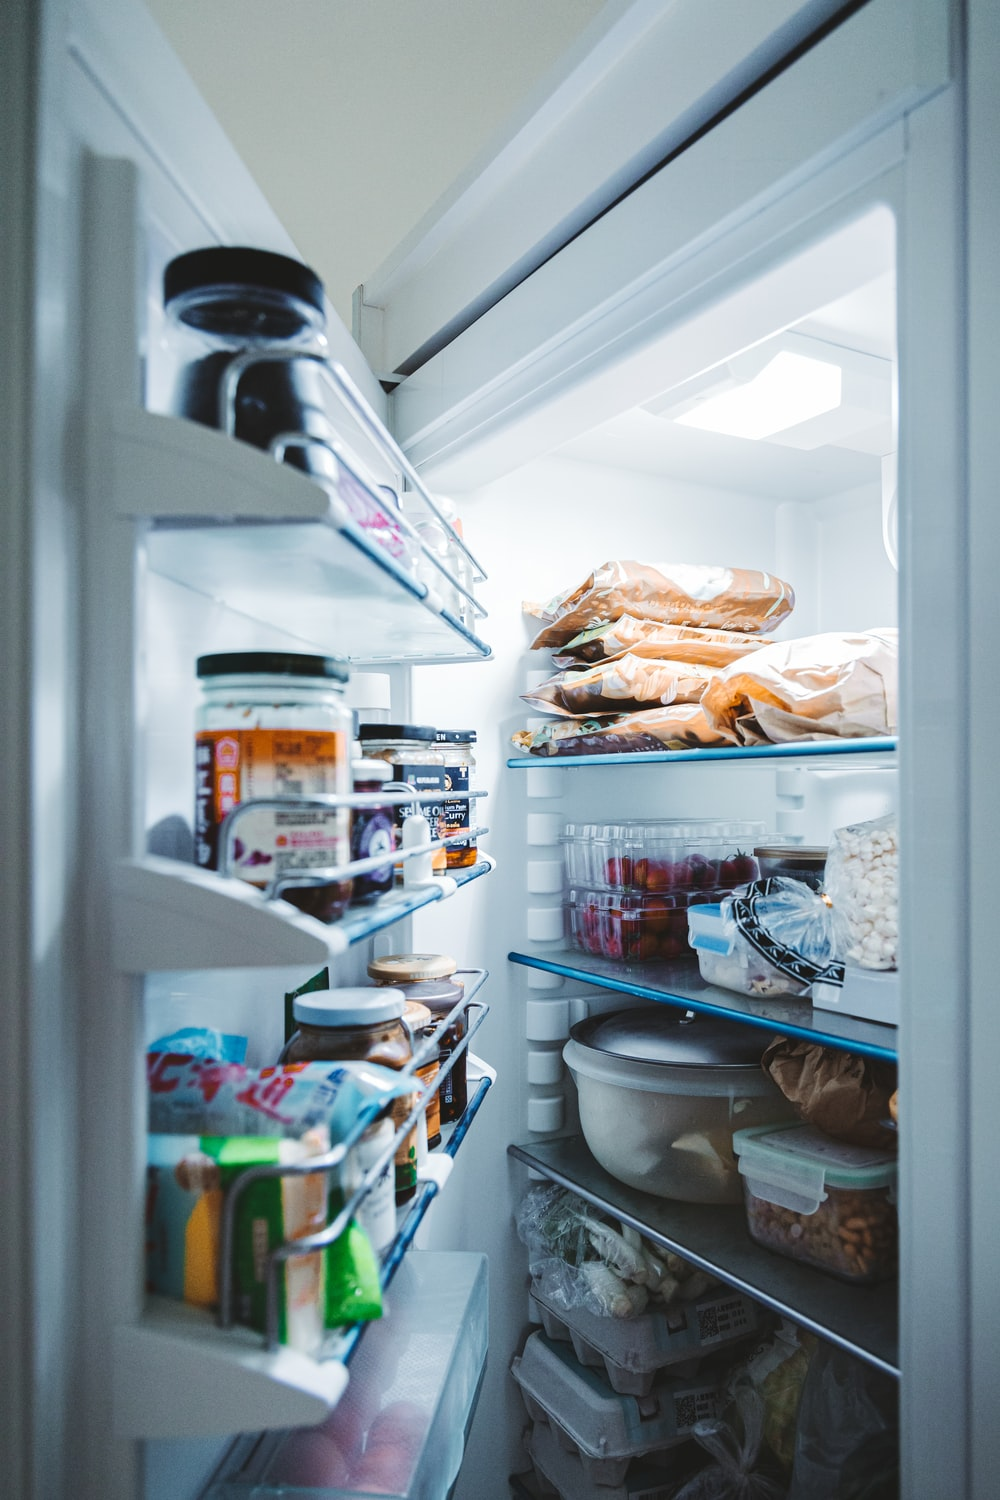 bread in refrigerator with assorted foods